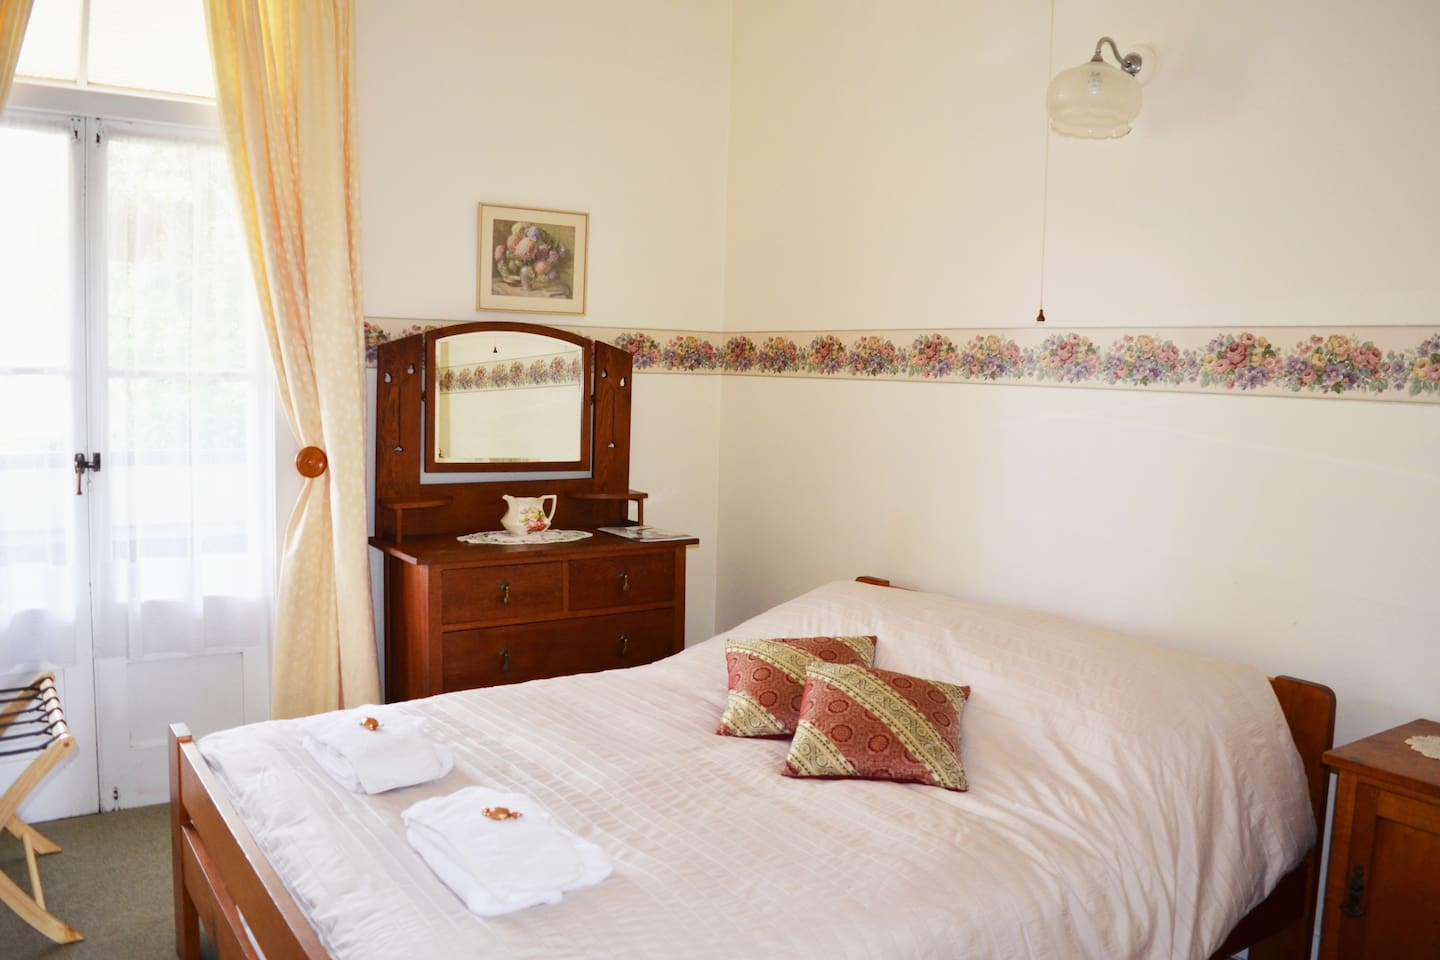 B&B Deluxe private double room with verandah access and shared bathroom facilities